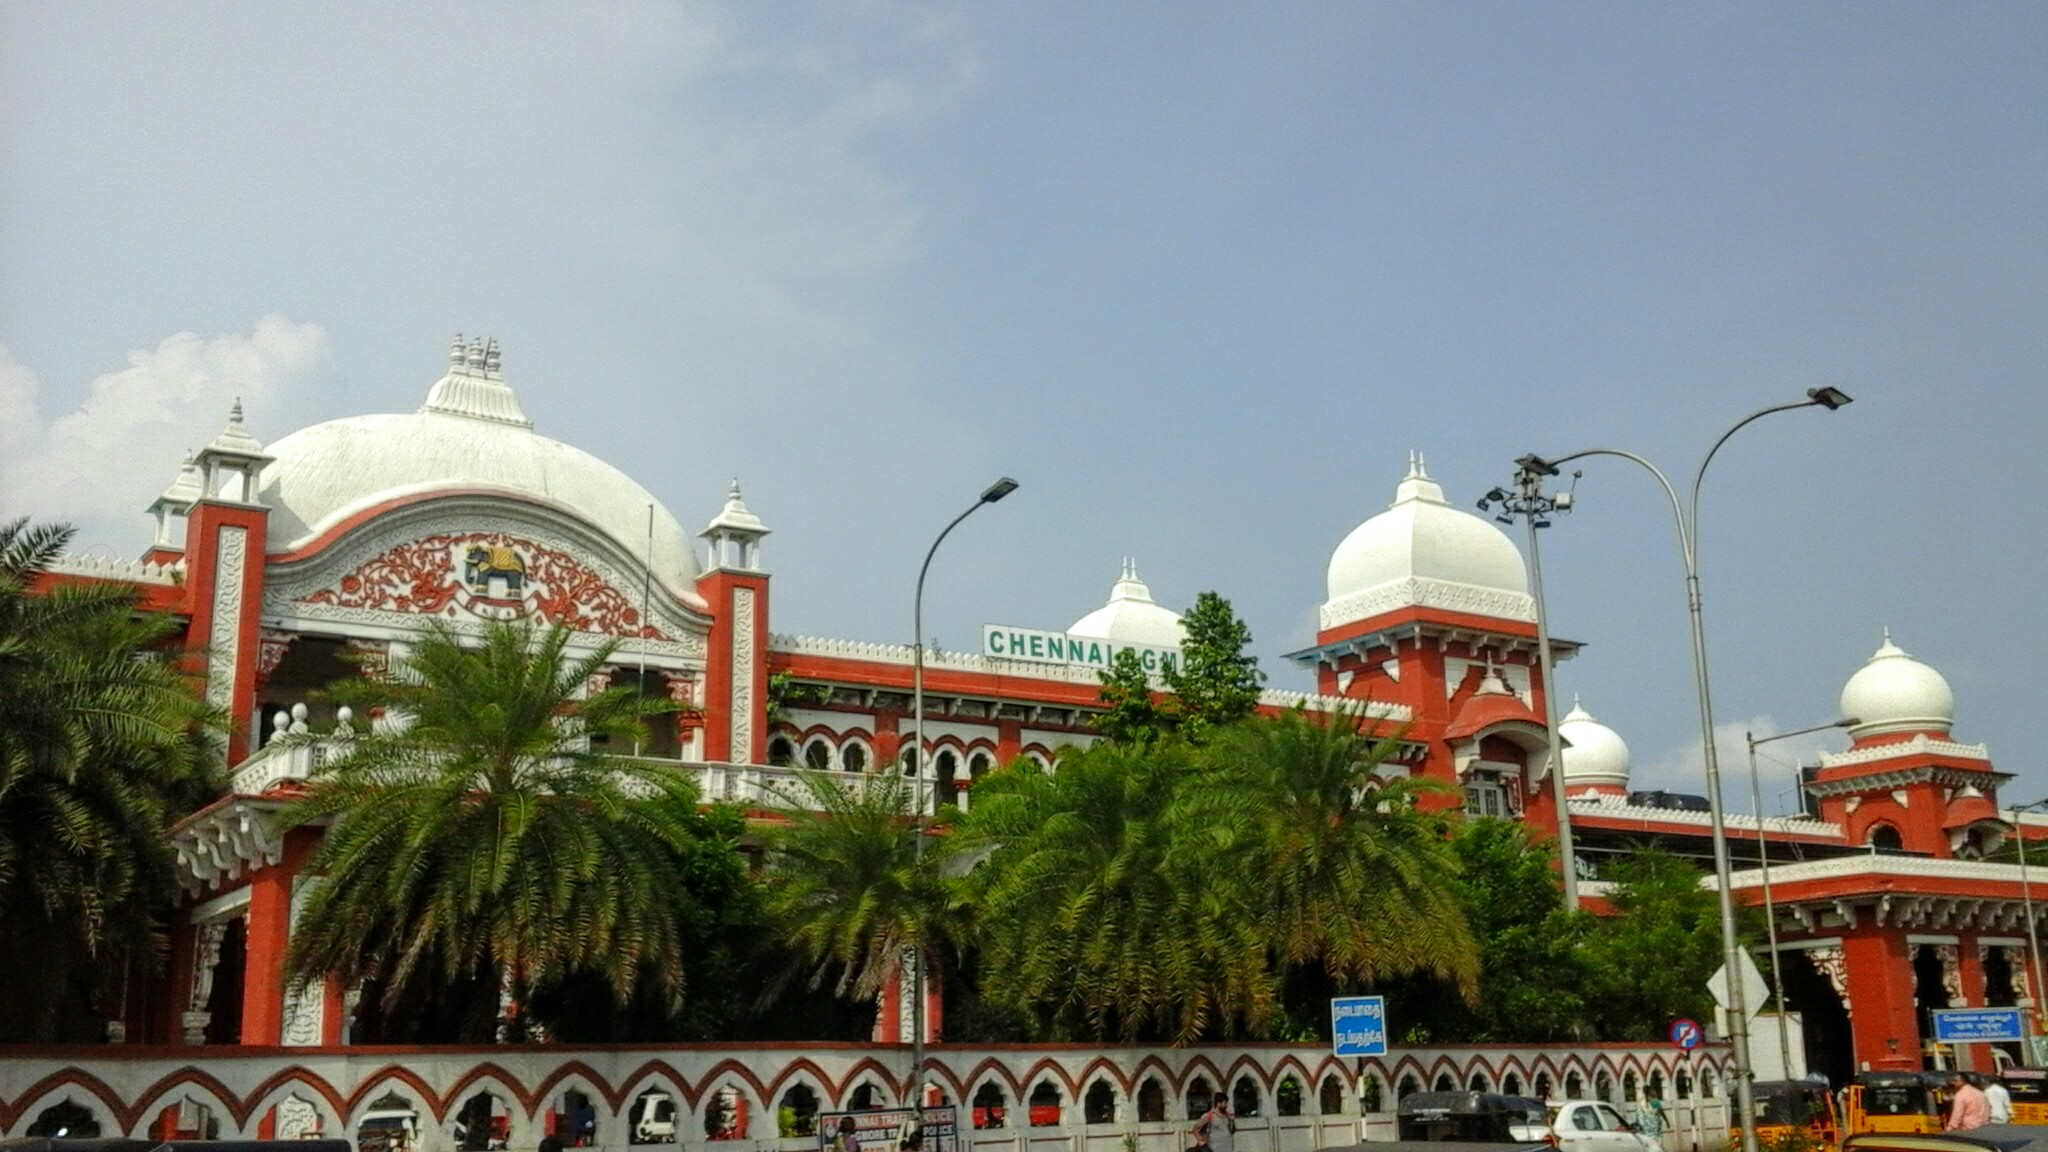 Chennai Egmore railway station - Wikipedia